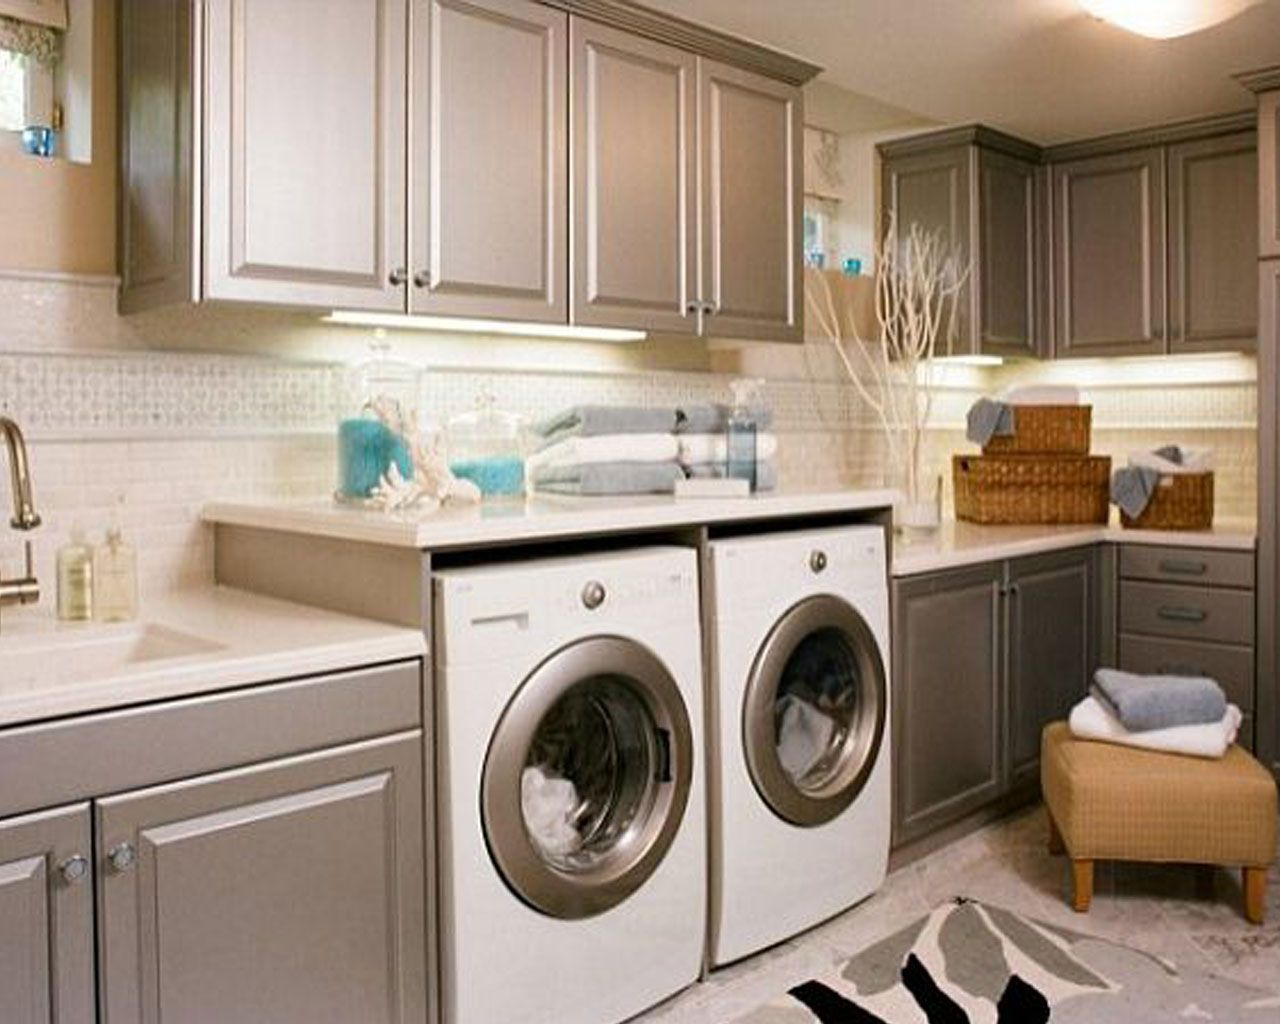 marvelous Kitchen And Laundry Room Designs #4: Best Images About Laundry Room On Pinterest Washer And Dryer - Kitchen  laundry room design